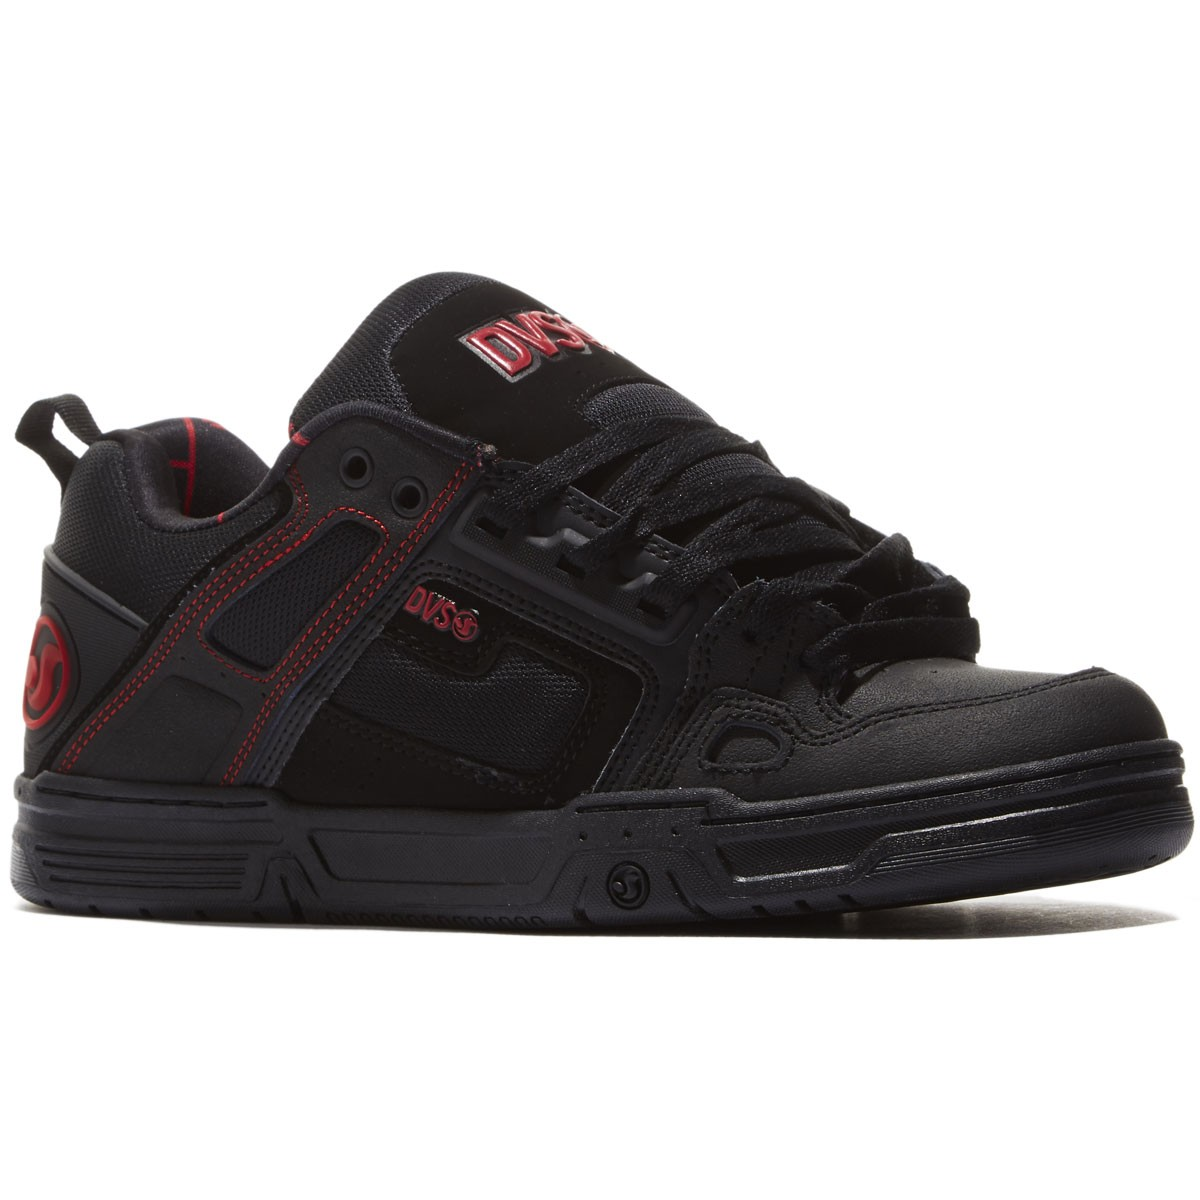 DVS Comanche Shoes - Black/Red/Black - 8.0